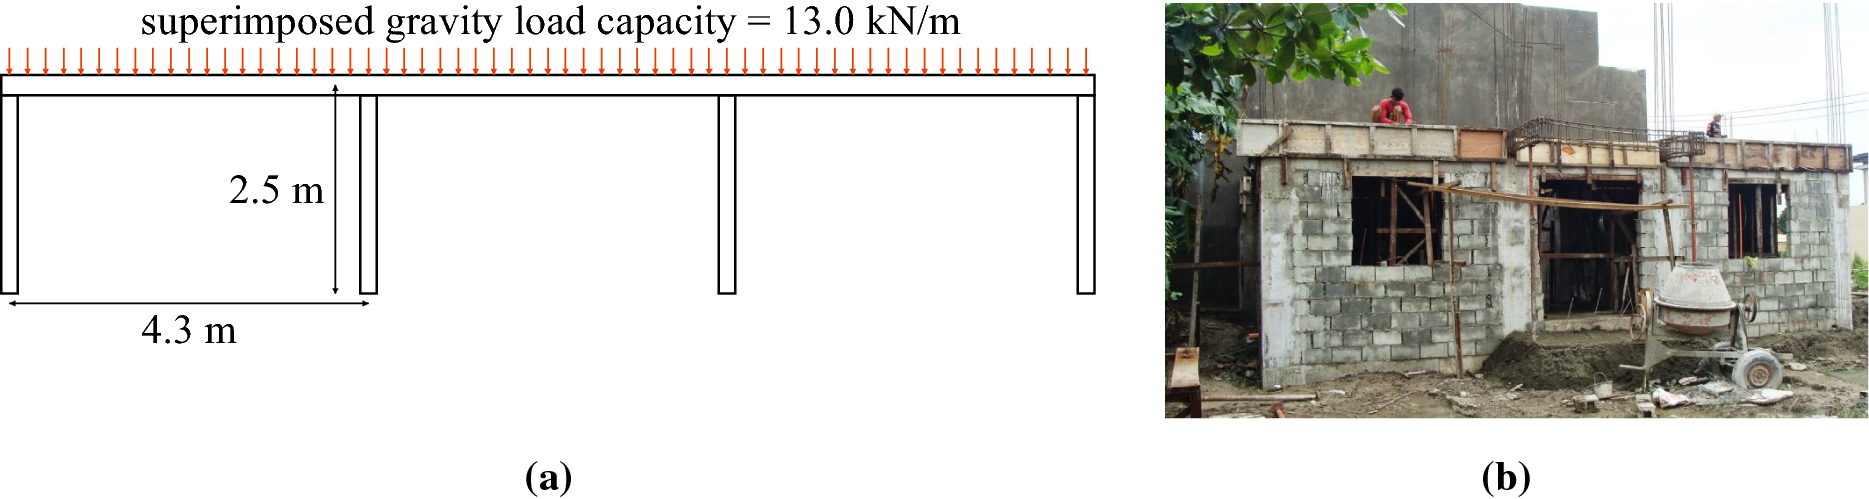 Bamboo reinforced concrete: a critical review | SpringerLink